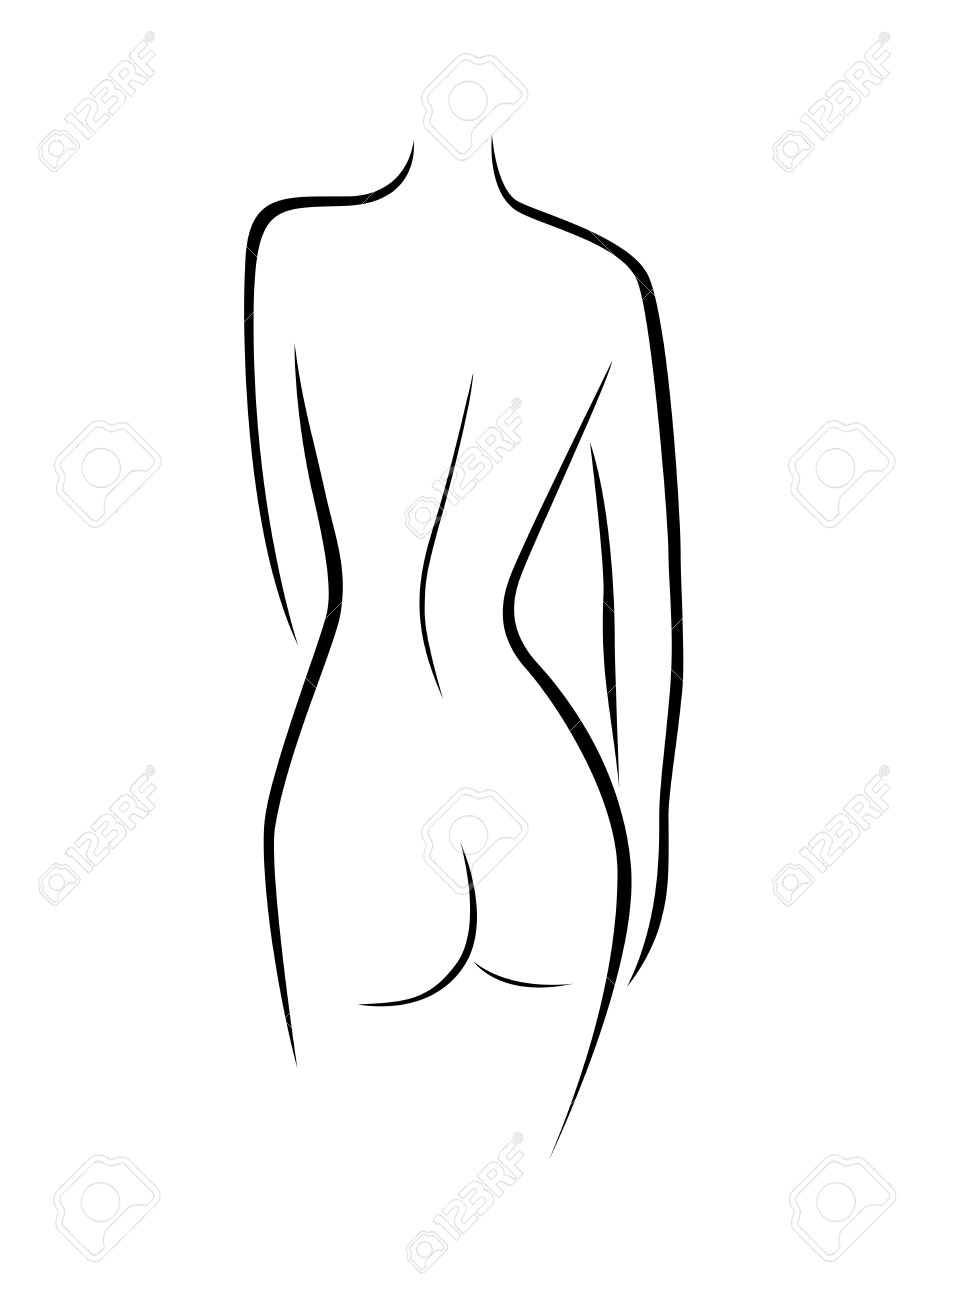 Abstract Female Back Contour, Black Over White Hand Drawing Vector ...